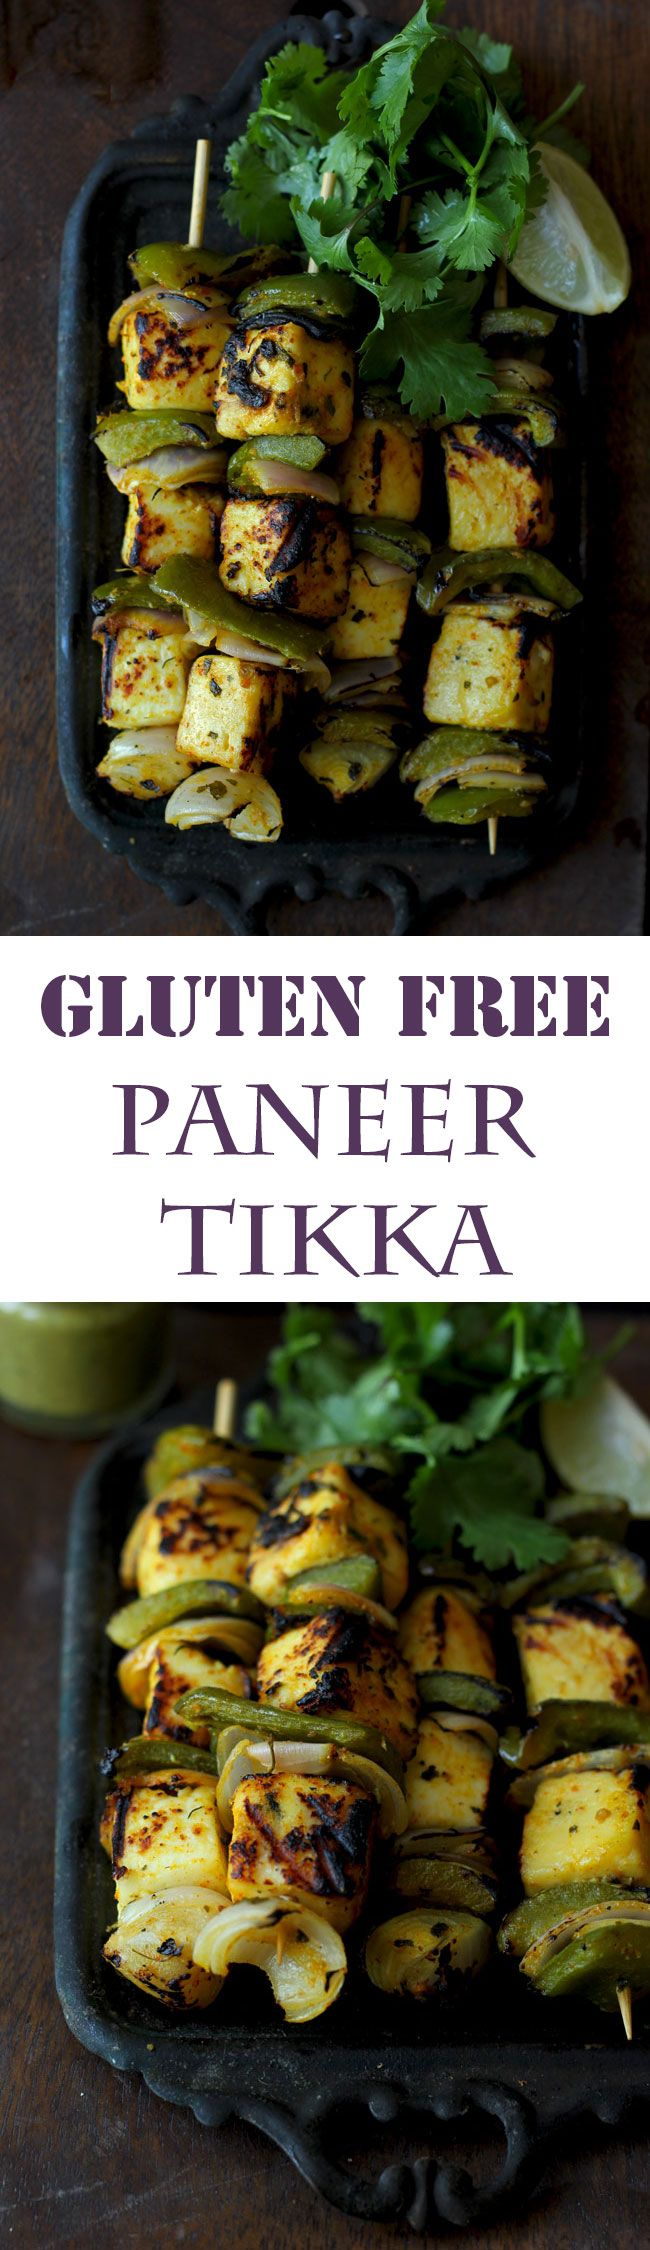 Paneer Tikka is the best Indian style appetizer for the BBQ party. And the good news is paneer tikka is gluten-free too. funfoodfrolic.com #indianfood #glutenfree #bbq #paneer